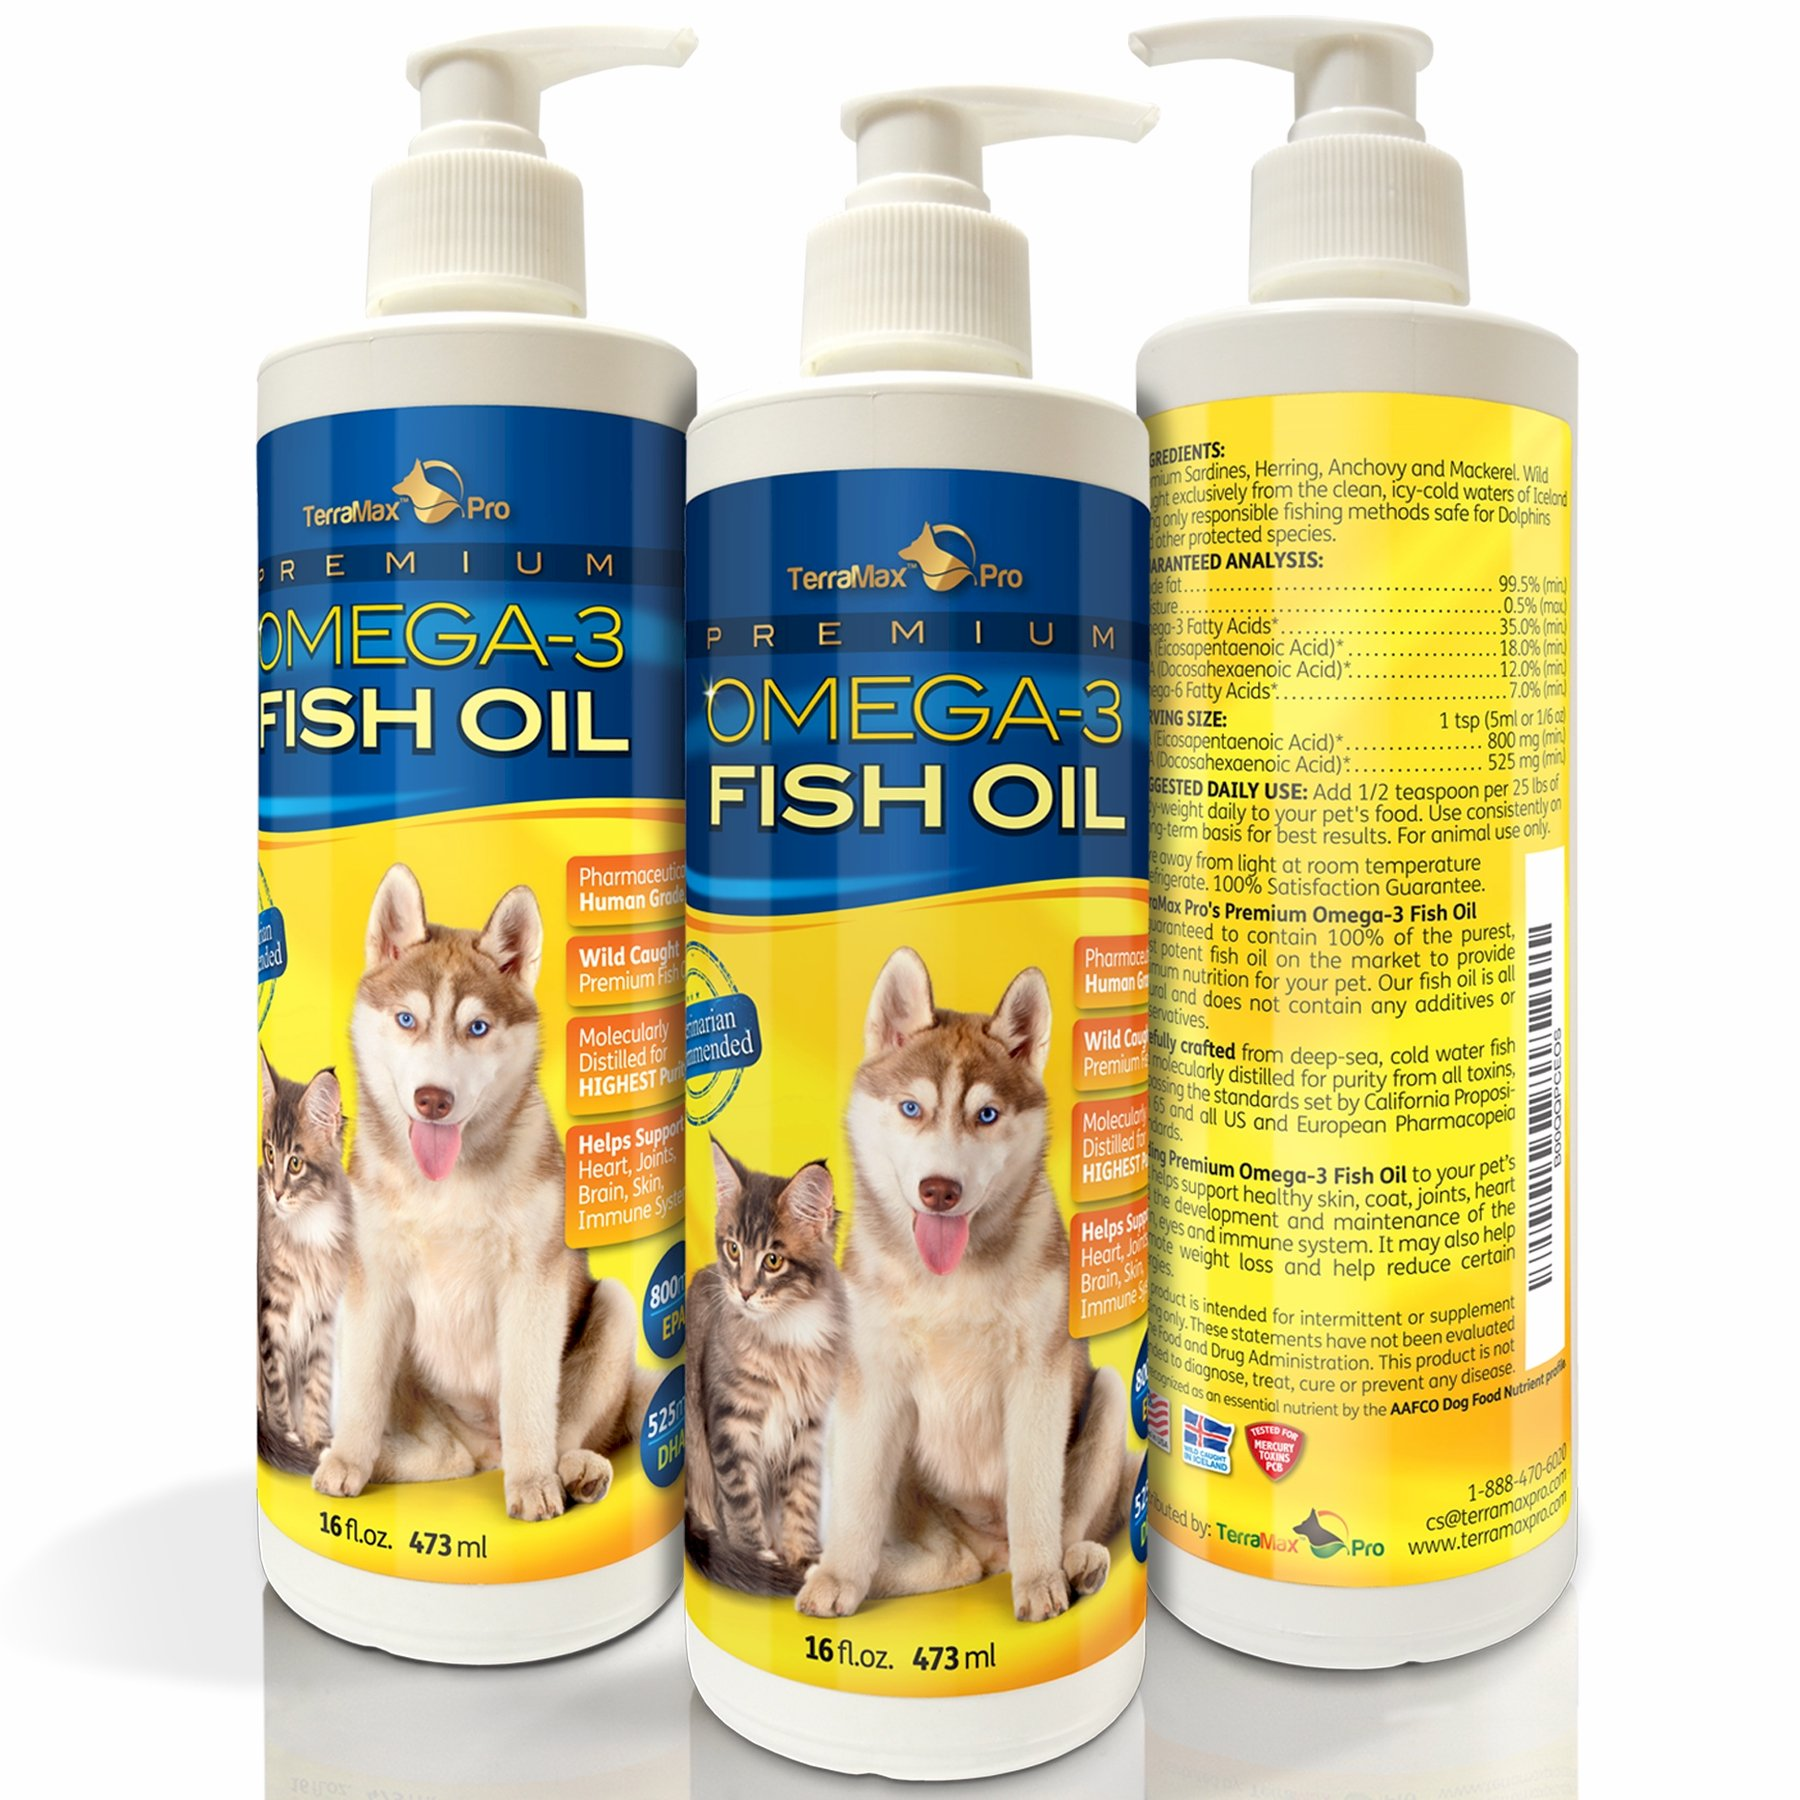 TerraMax Pro Liquid Omega-3 Fish Oil for Dogs and Cats, 32 Fl. Oz. by TerraMax Pro